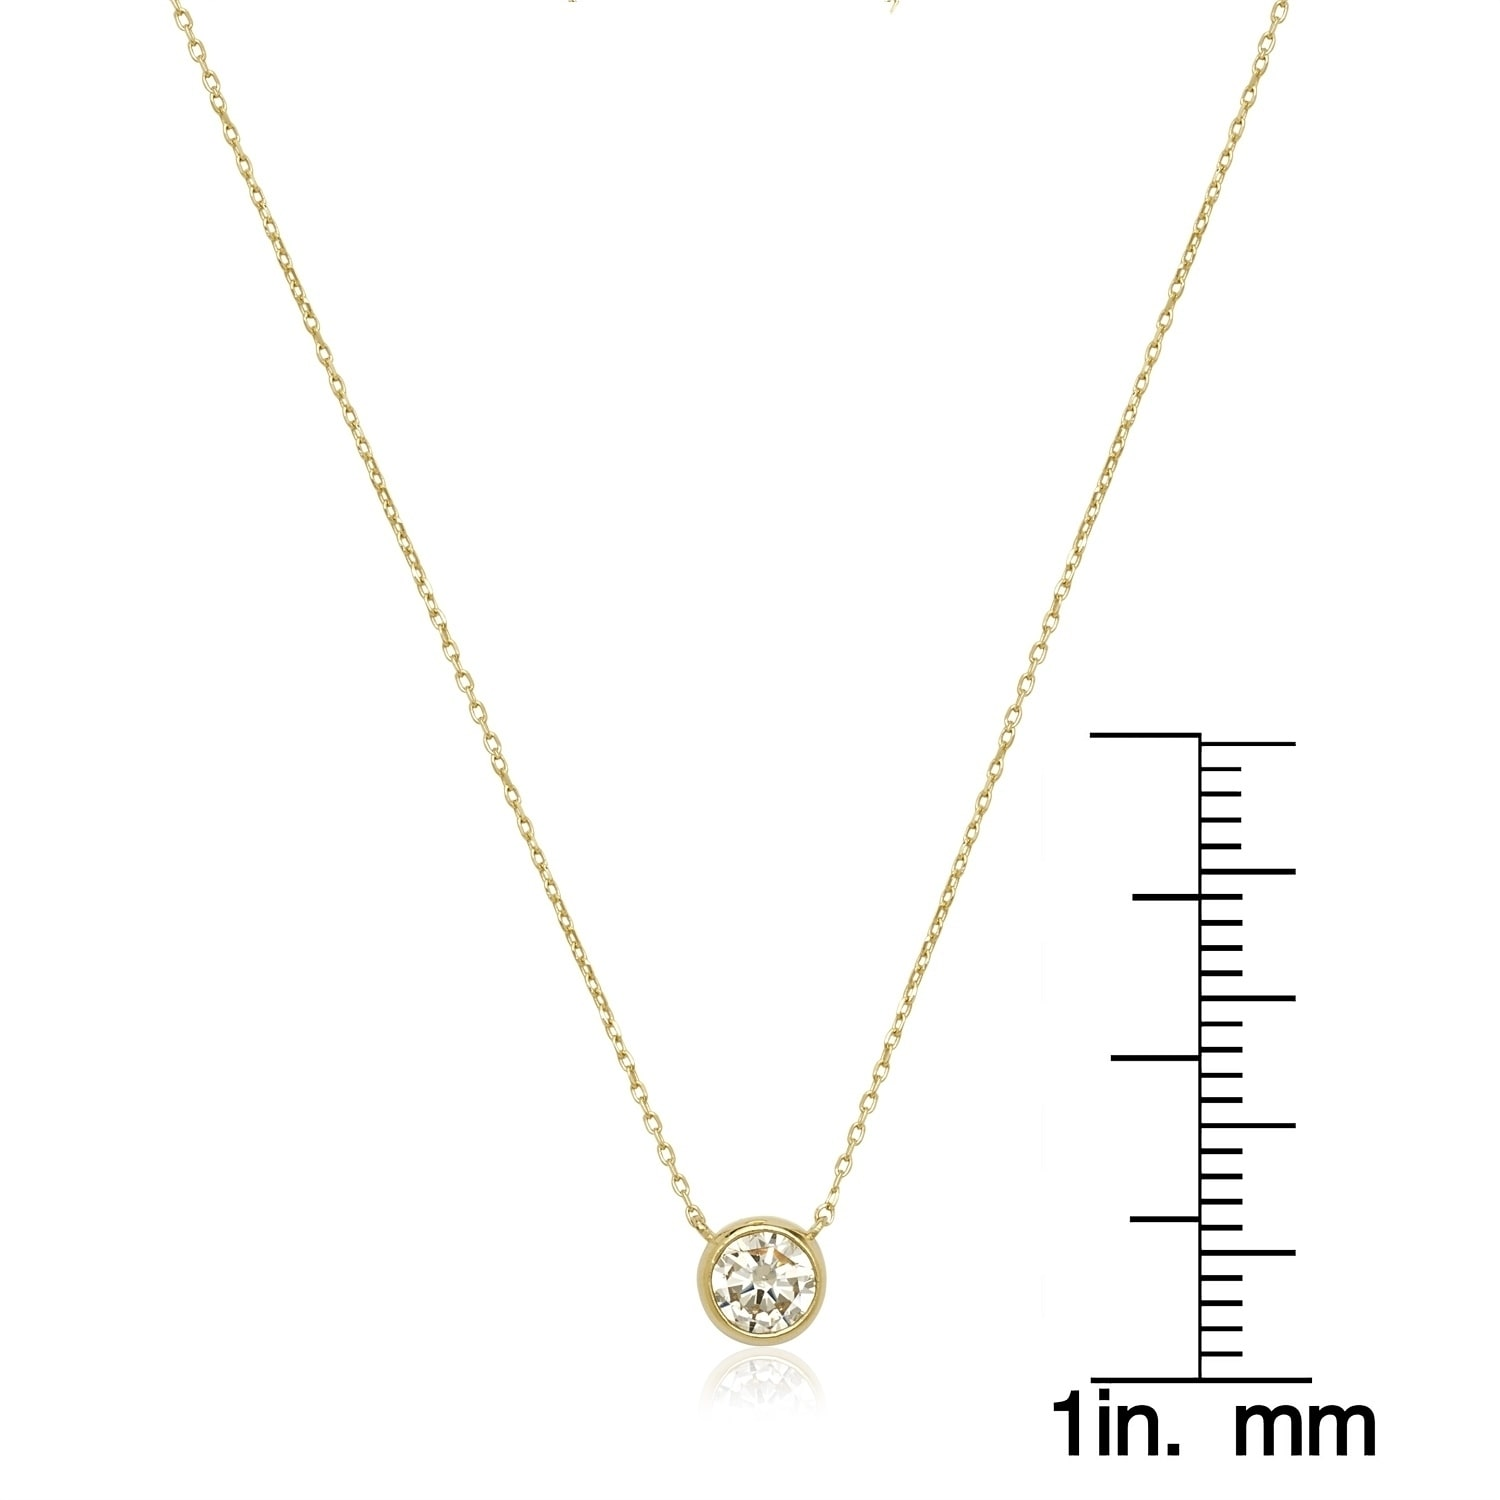 Yellow or White Gold 14K Gold Drop Pendant with Cubic Zirconia